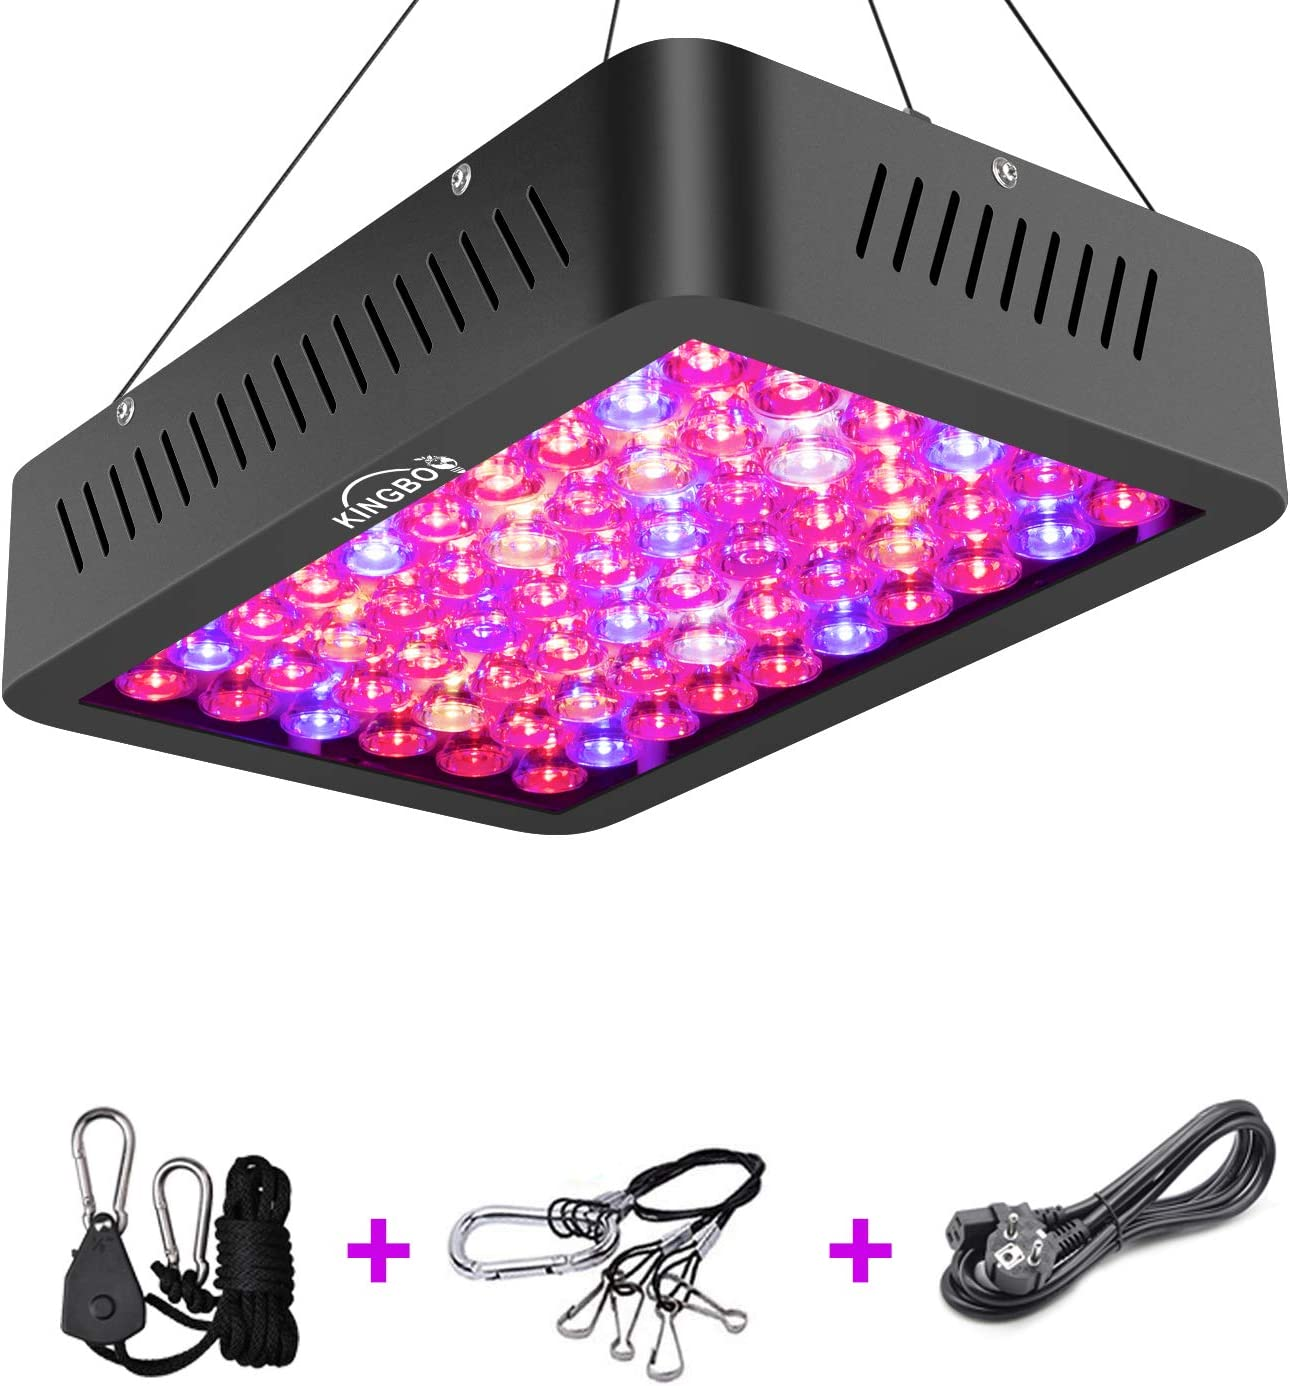 LED Plant Grow Lights, KINGBO 600W High Power Grow Lamp with Optical Lens, Double Chip Three Chip, 12-Band Full Spectrum Grow Light for Indoor Plants Veg and Flower Daisy Chain Function